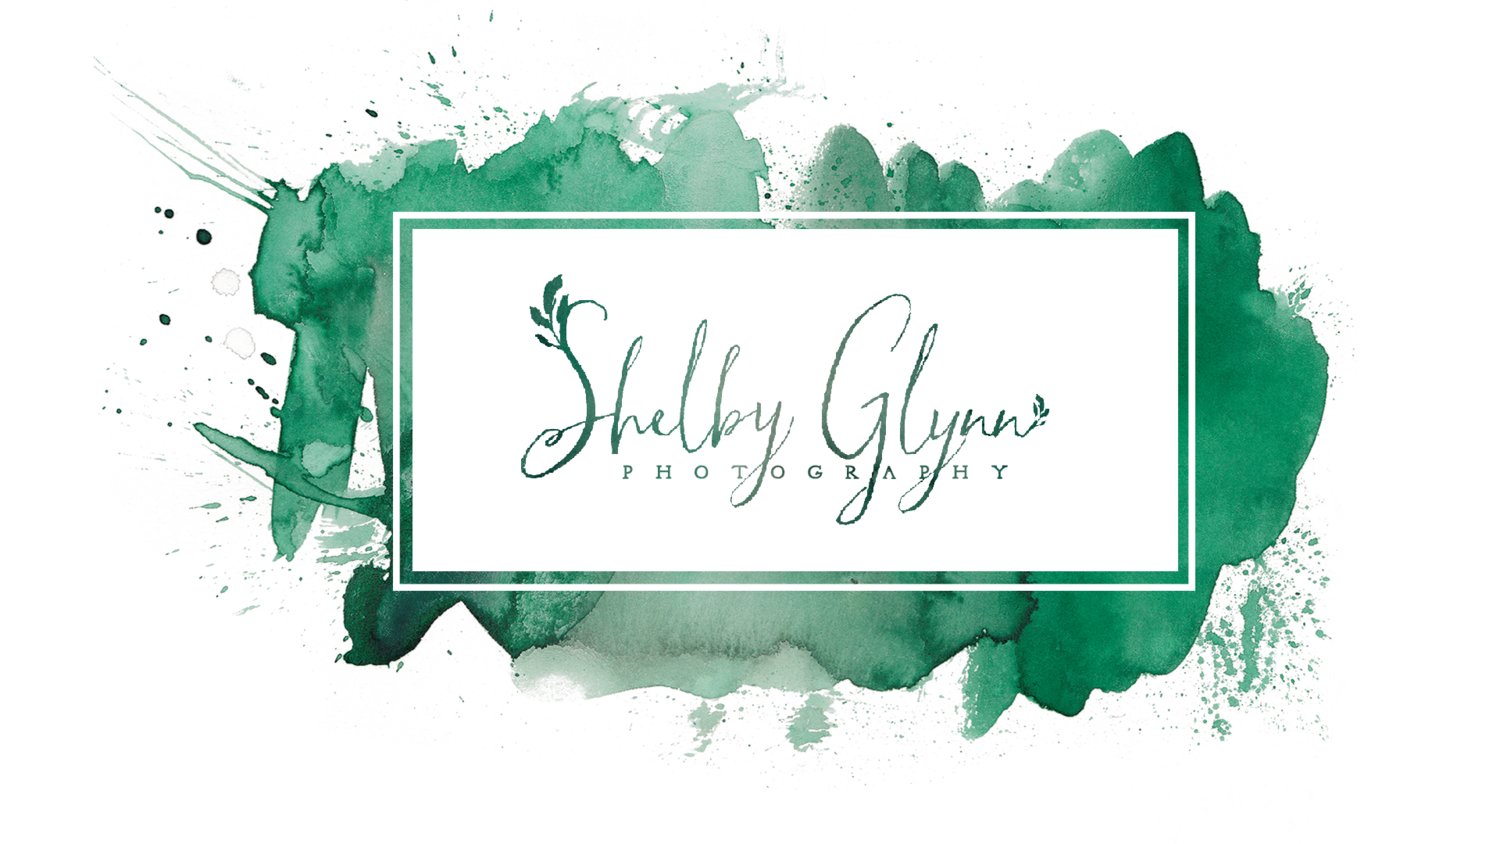 Shelby Glynn Photography  | Portrait and Event Photographer  |  Tampa, FL